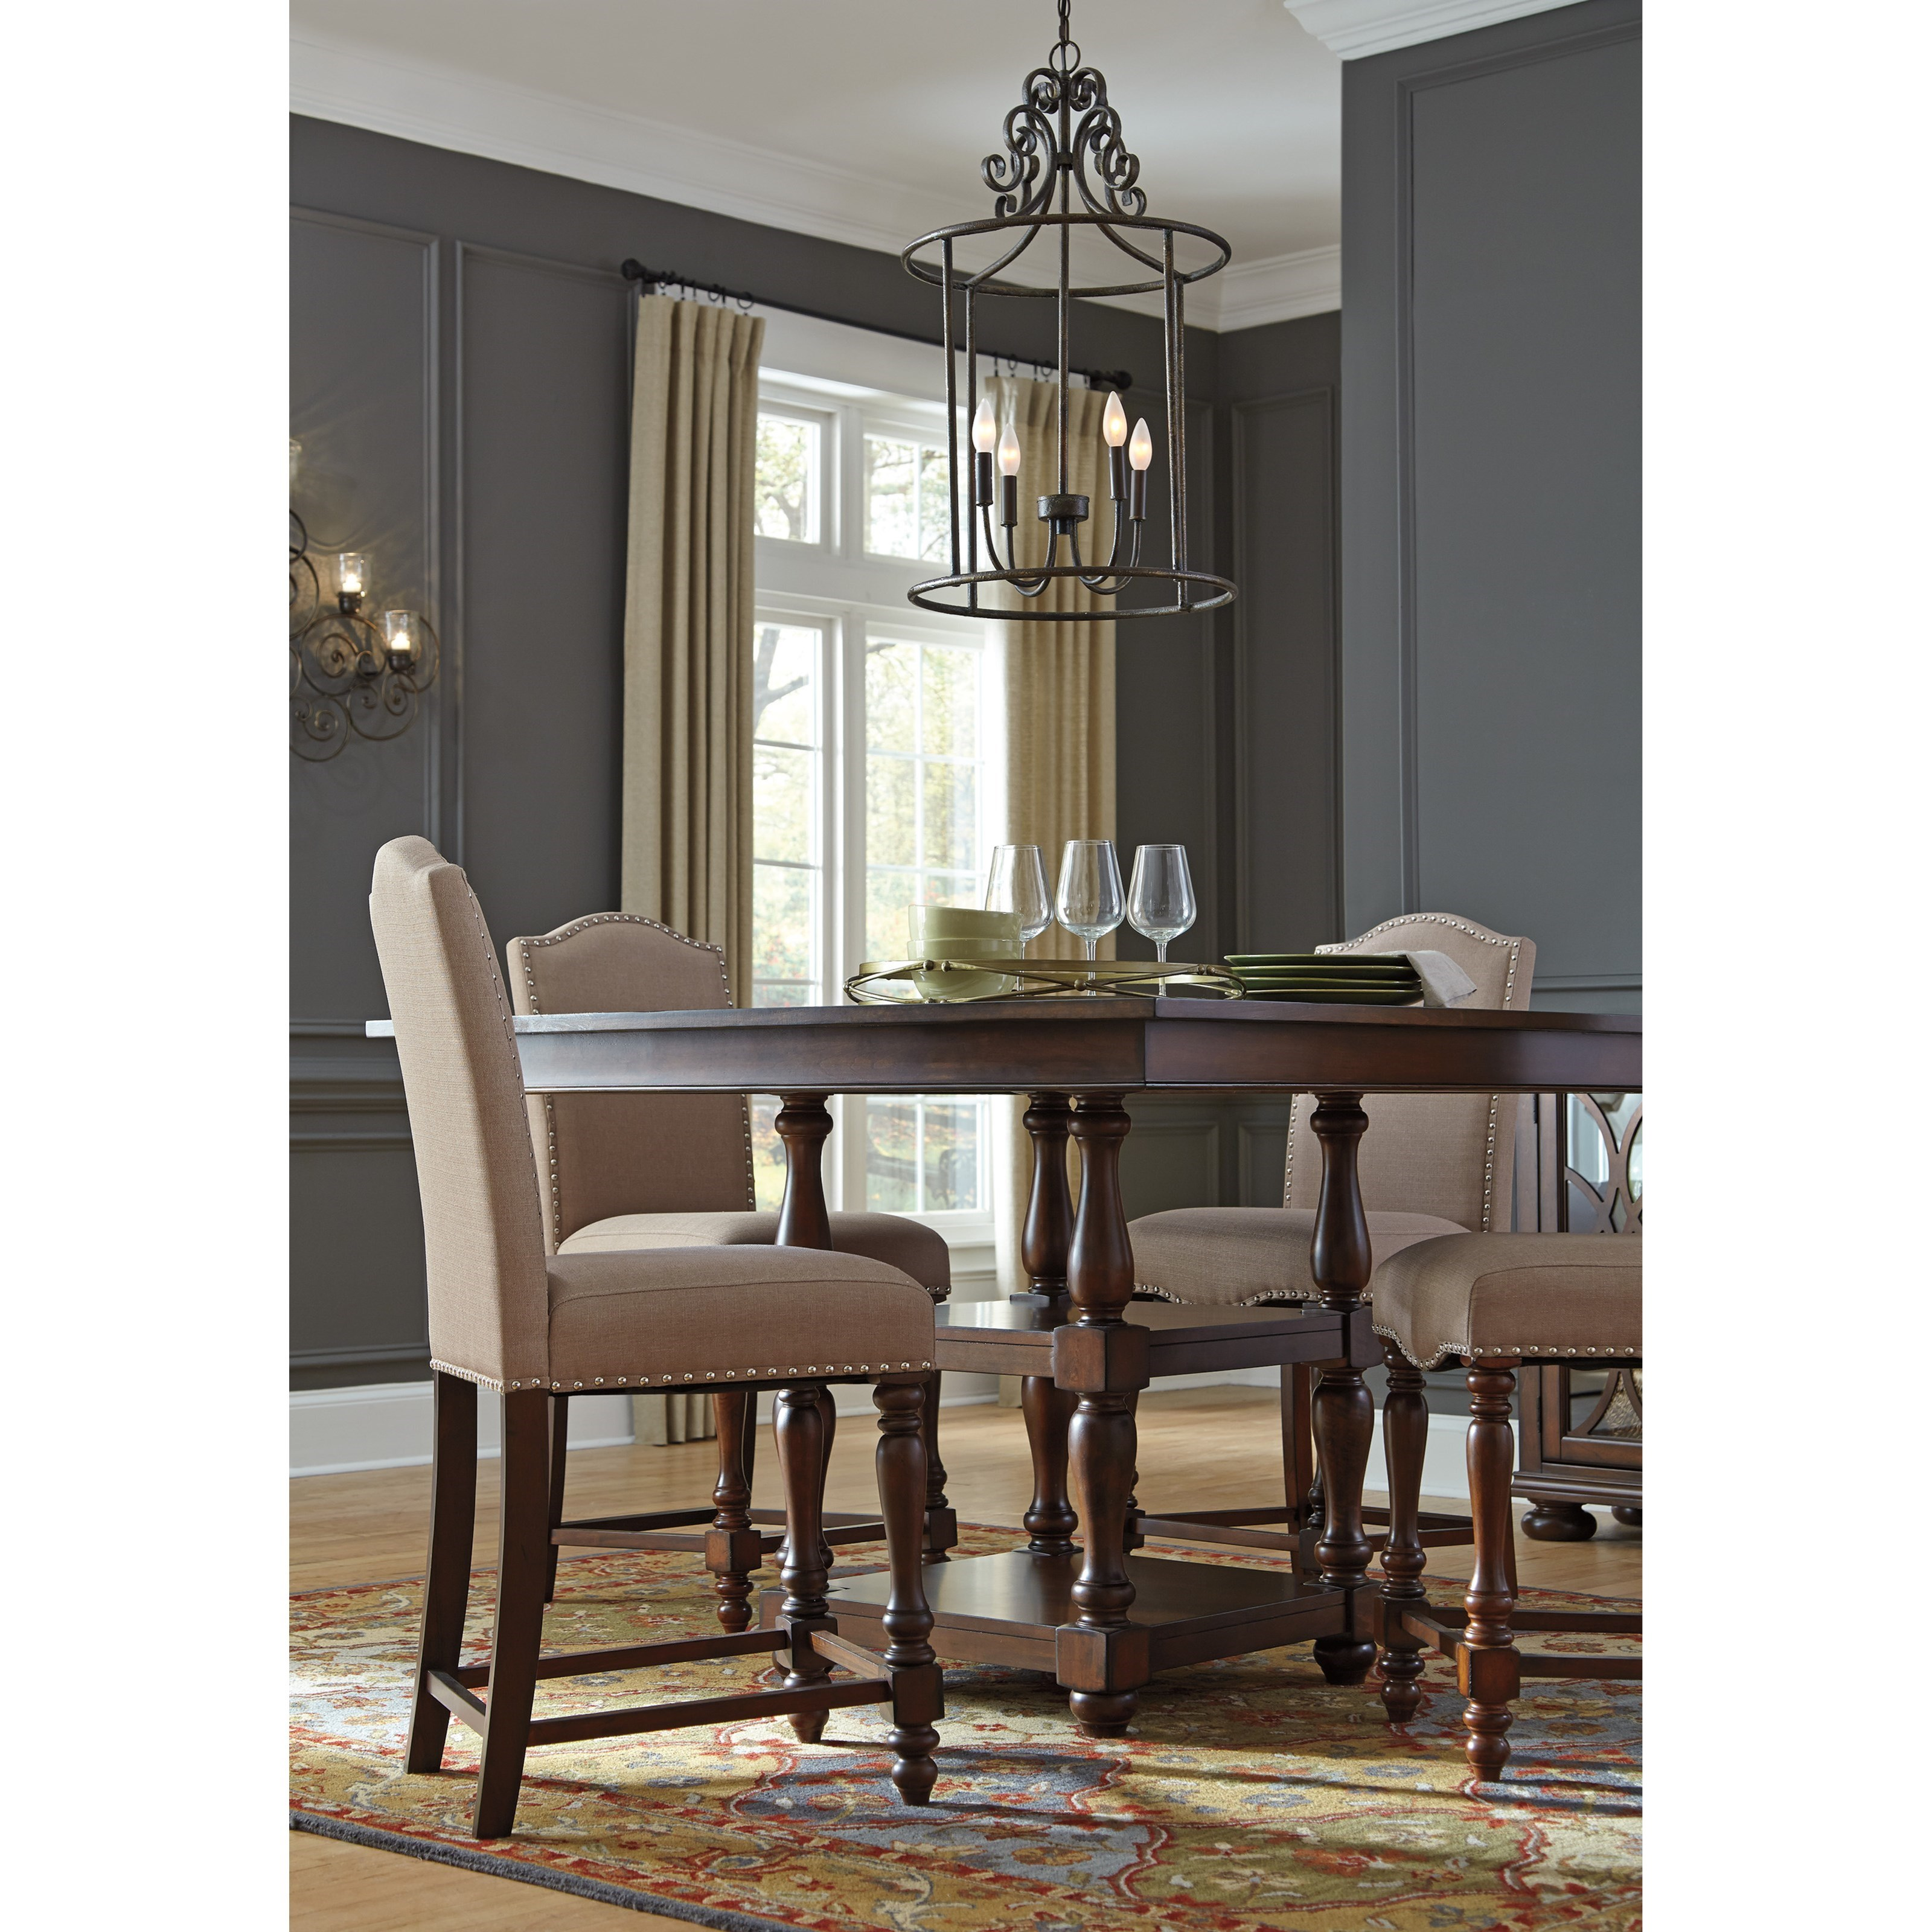 Signature Design By Ashley Baxenburg 5 Piece Square Dining Room Counter Table Set Miskelly